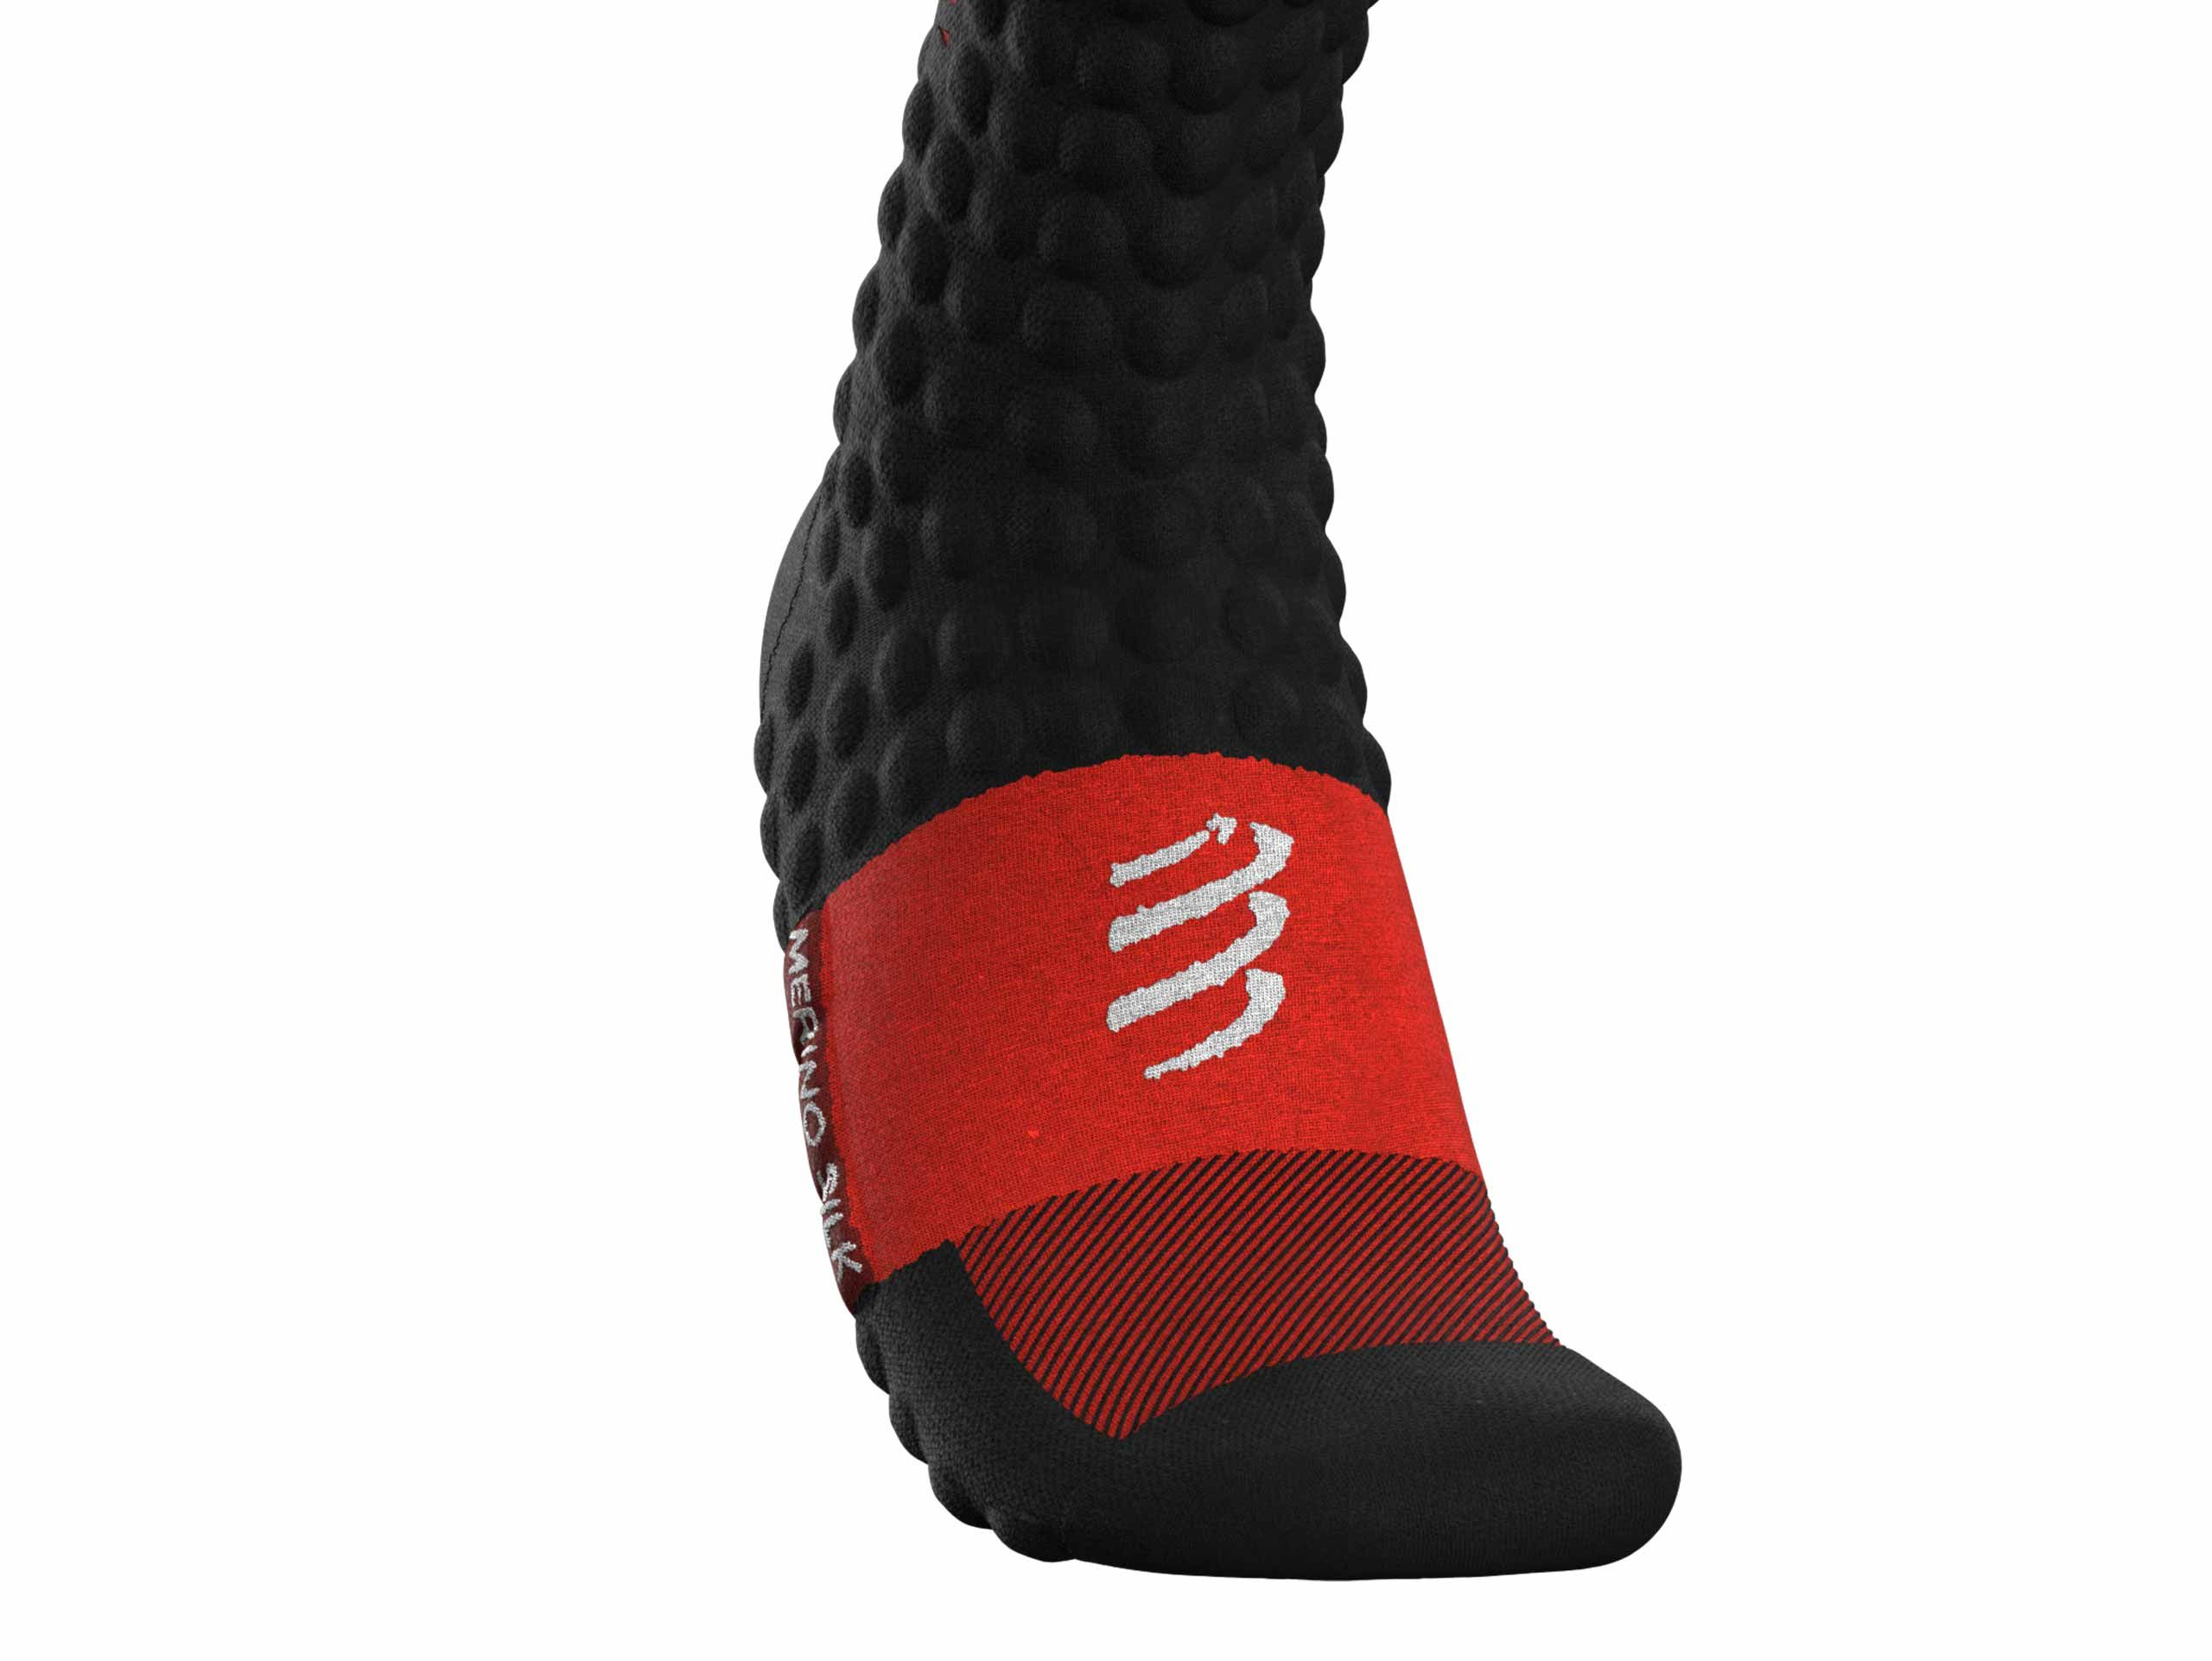 Skimo Full Socks - Black Red